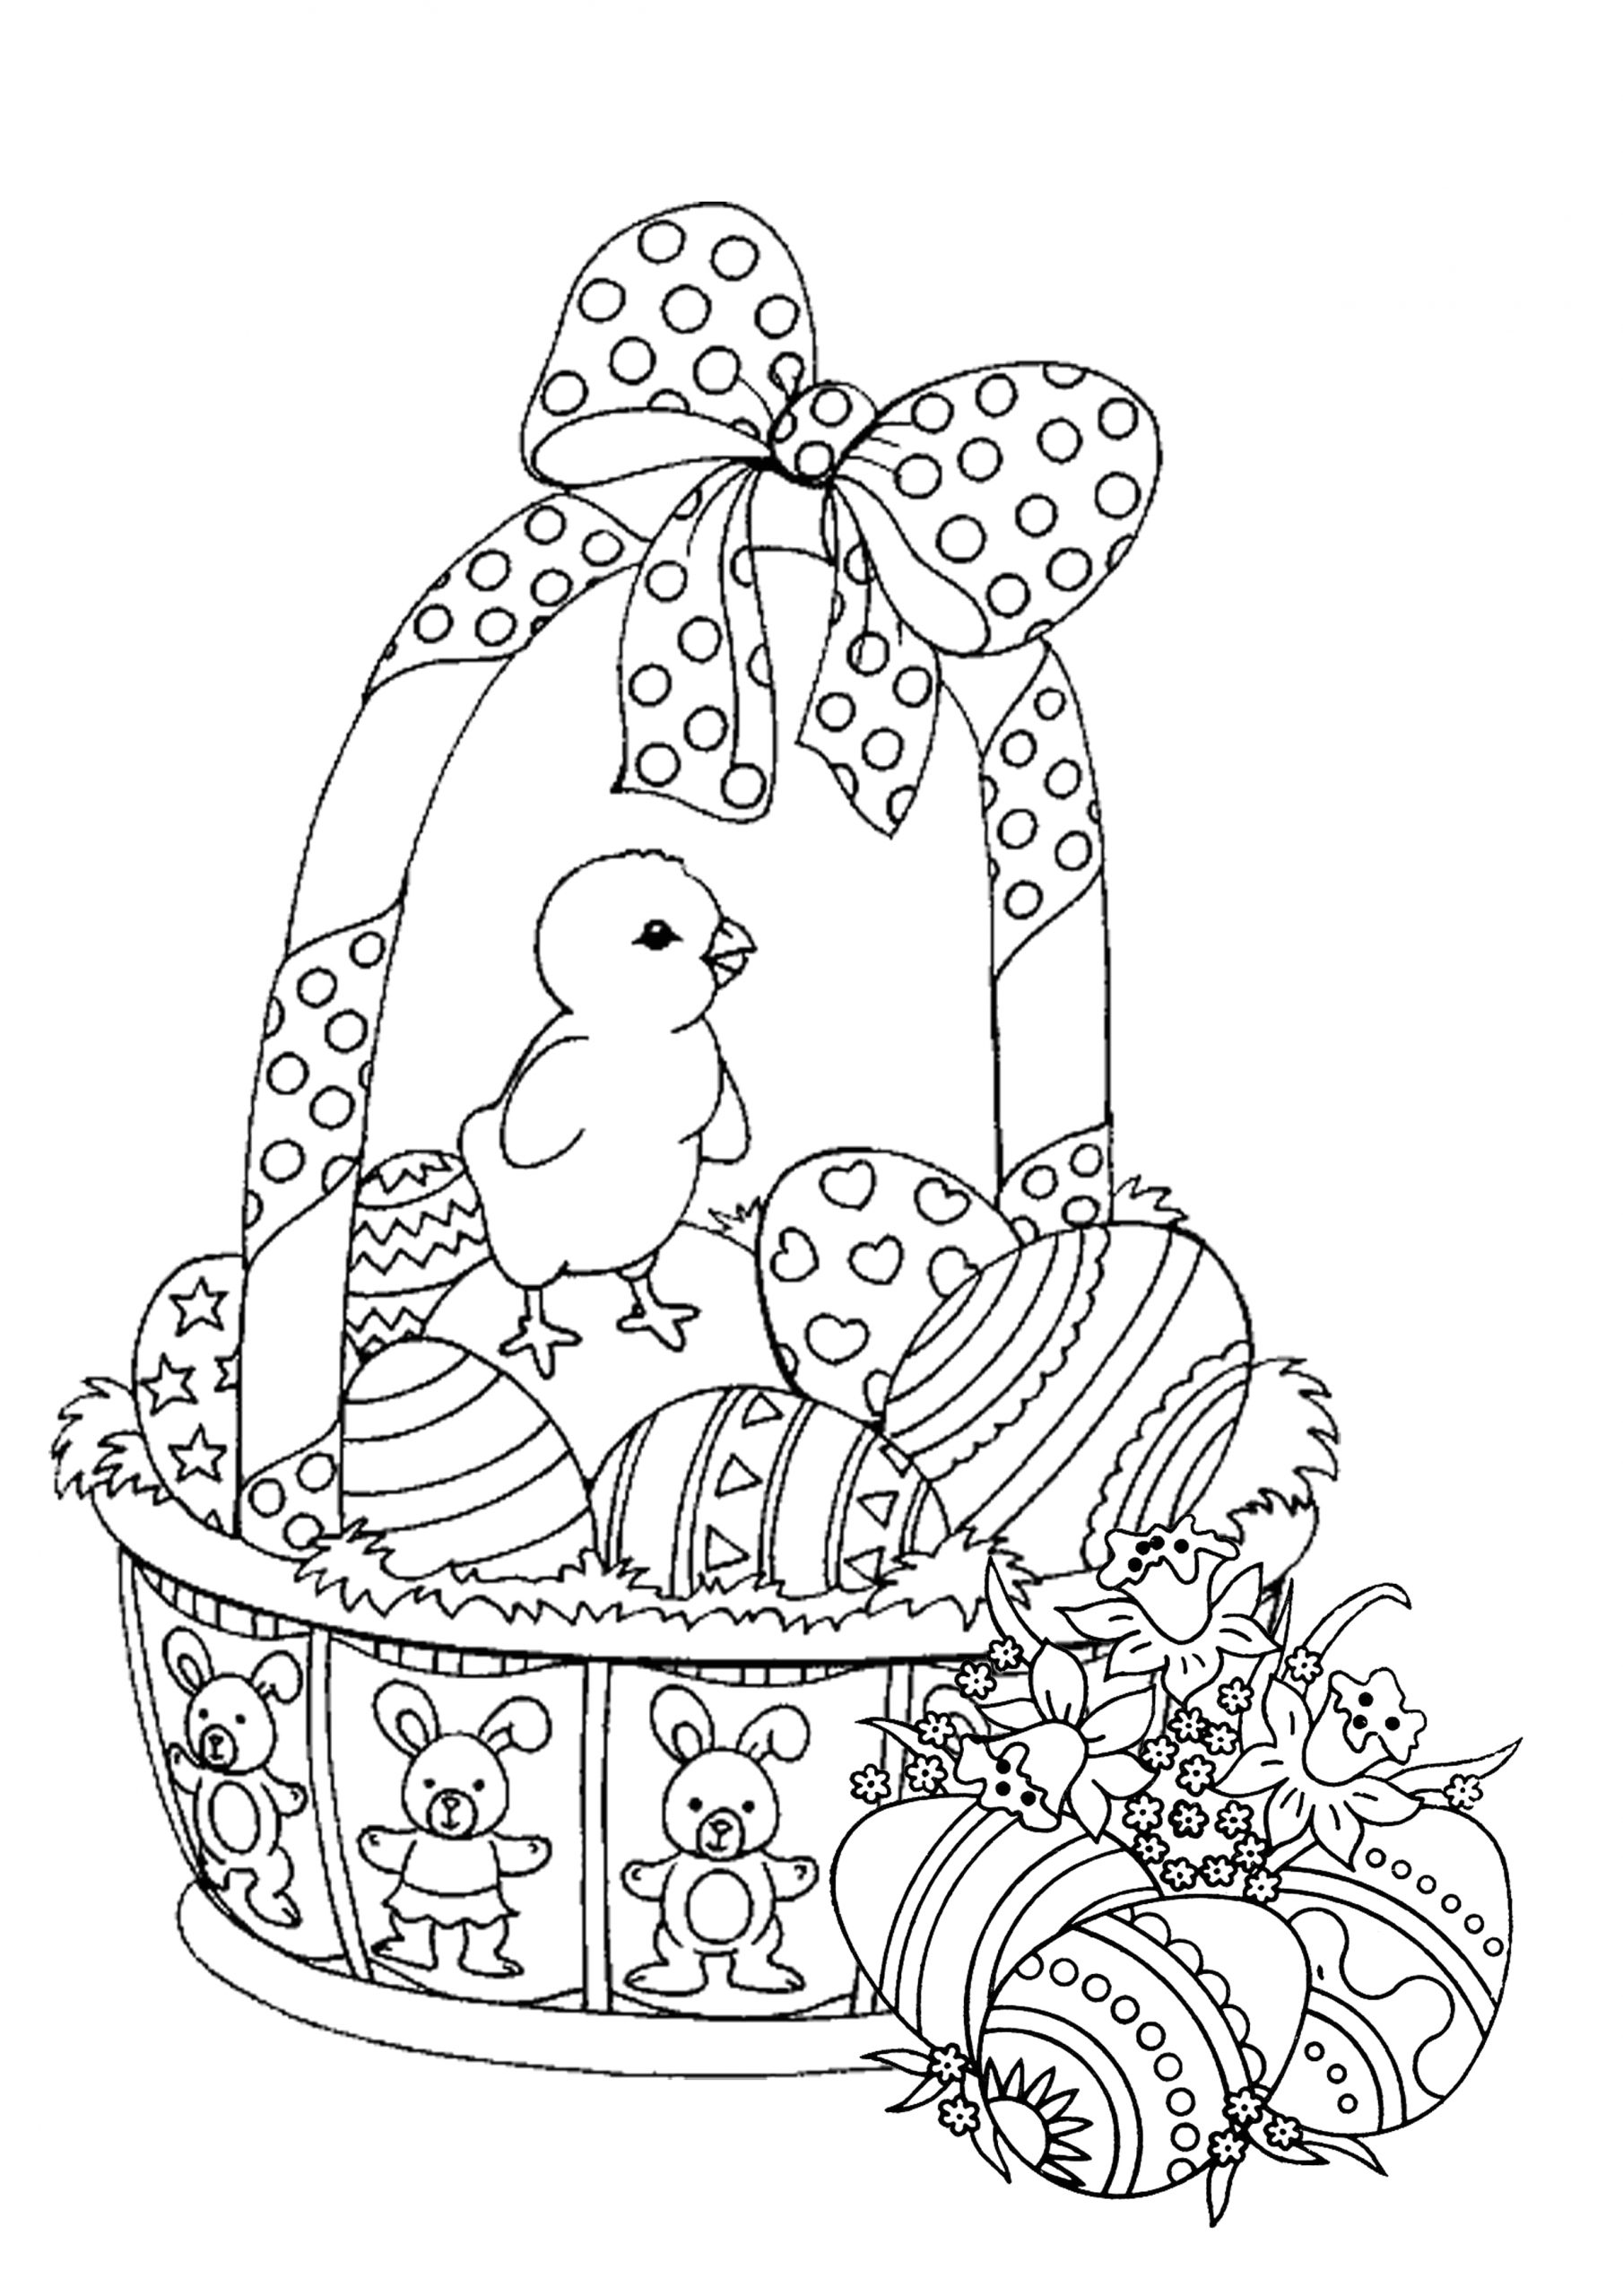 Free Printable Coloring Pages for Adults Easter Easter Coloring Pages for Adults Best Coloring Pages for